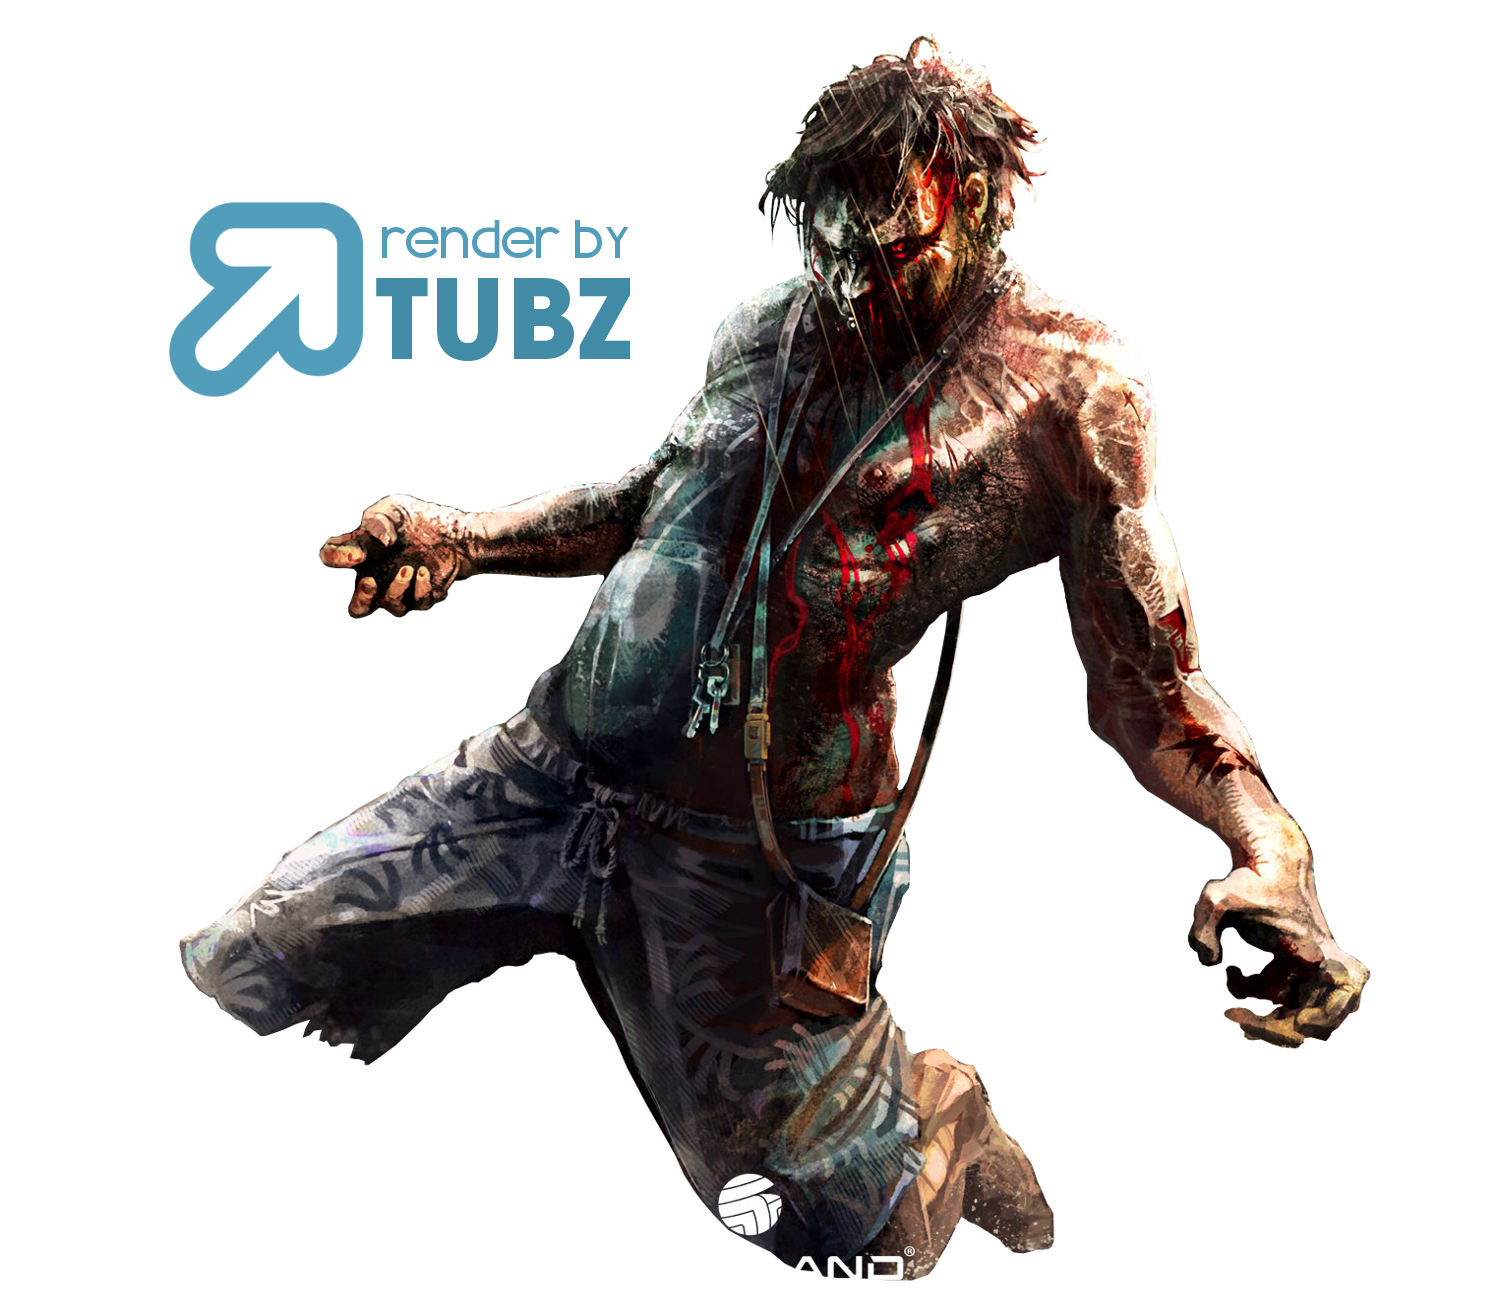 Dead island png. Hd transparent images pluspng